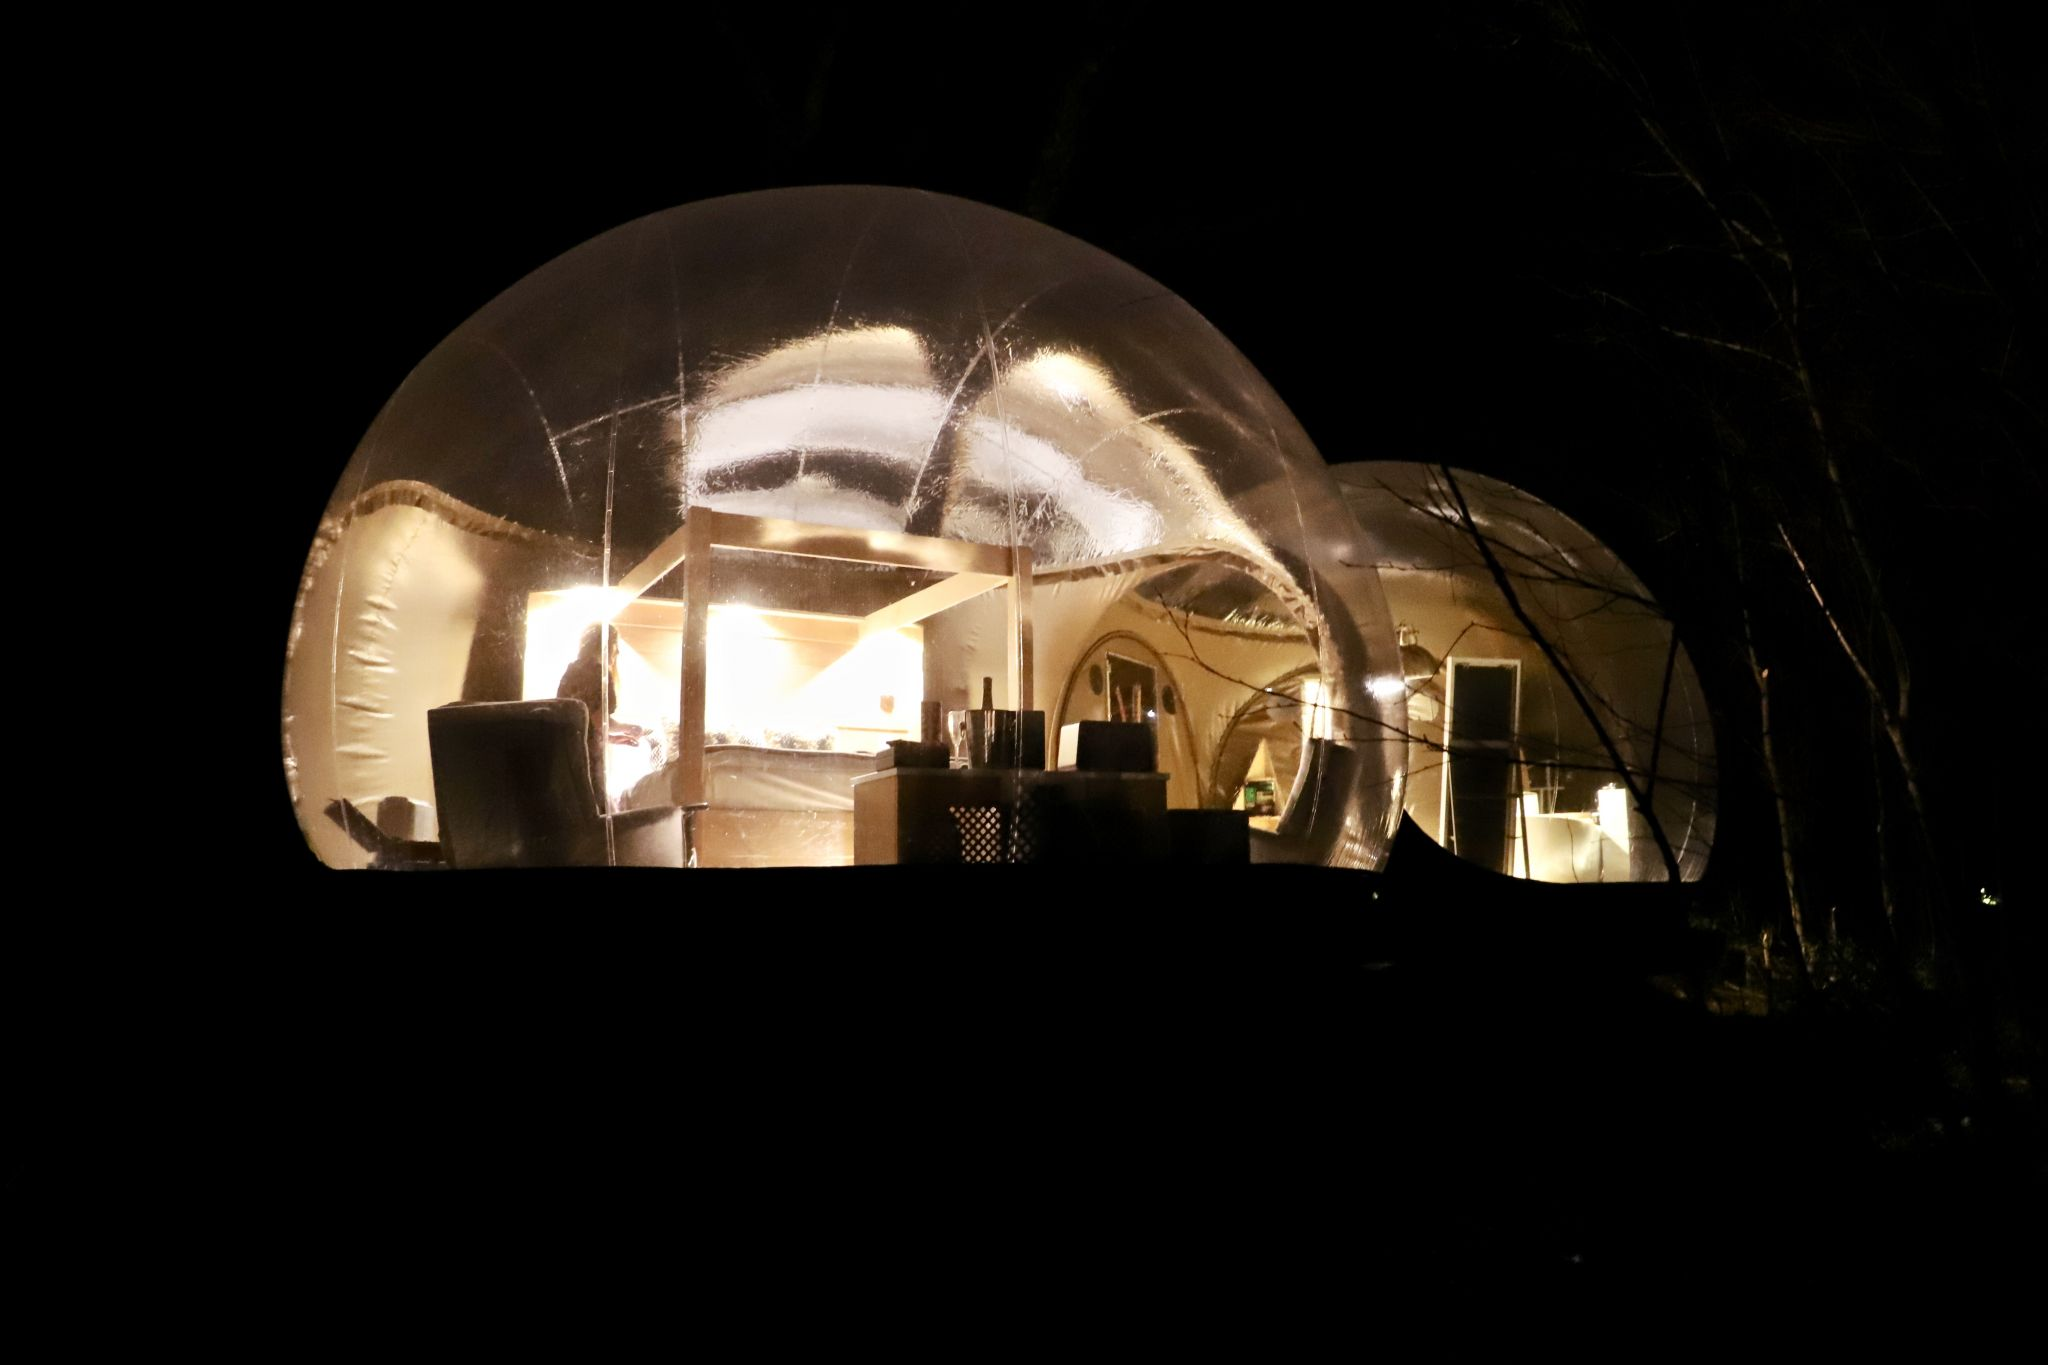 Staying in the bubble dome in Finn Lough, Nothern Ireland